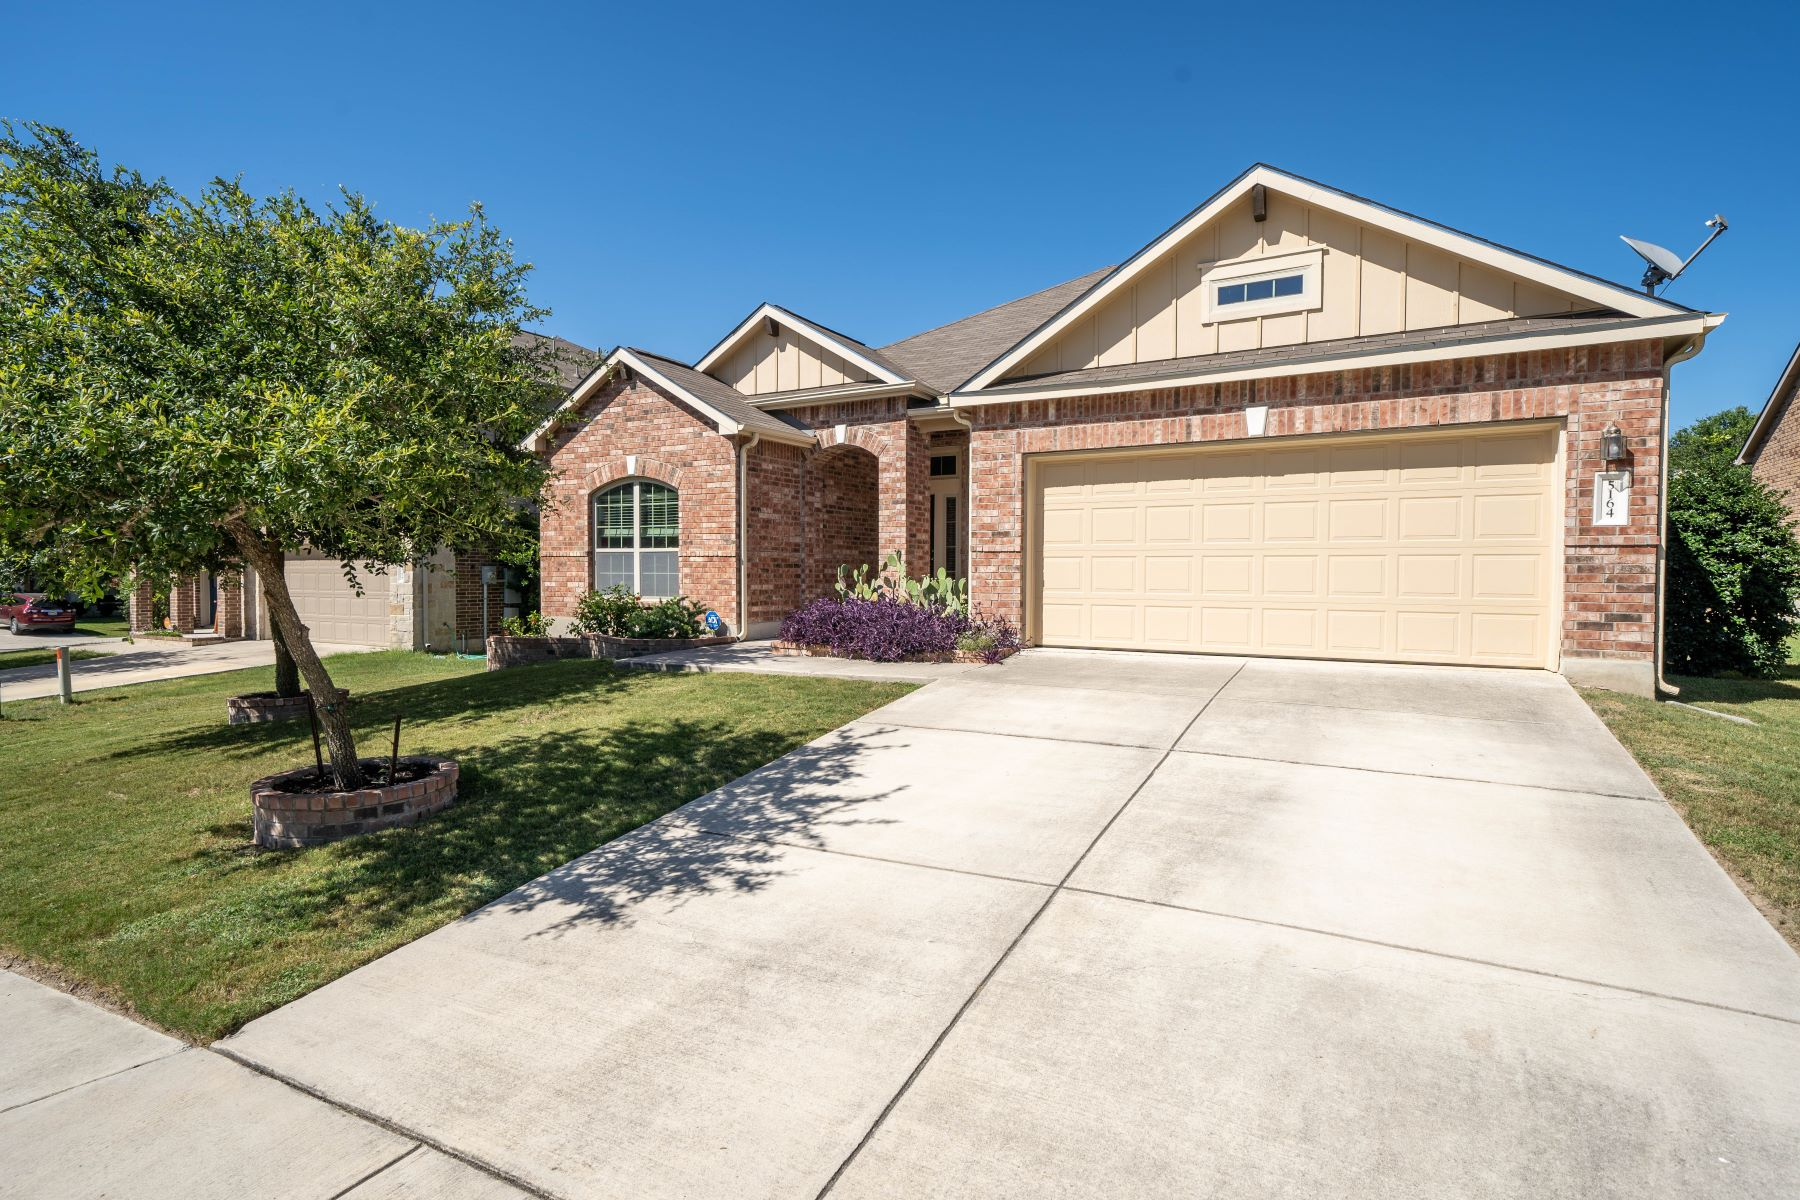 Single Family Homes for Sale at Spacious Home Near Randolph Air Force Base 5164 Timber Springs Schertz, Texas 78108 United States